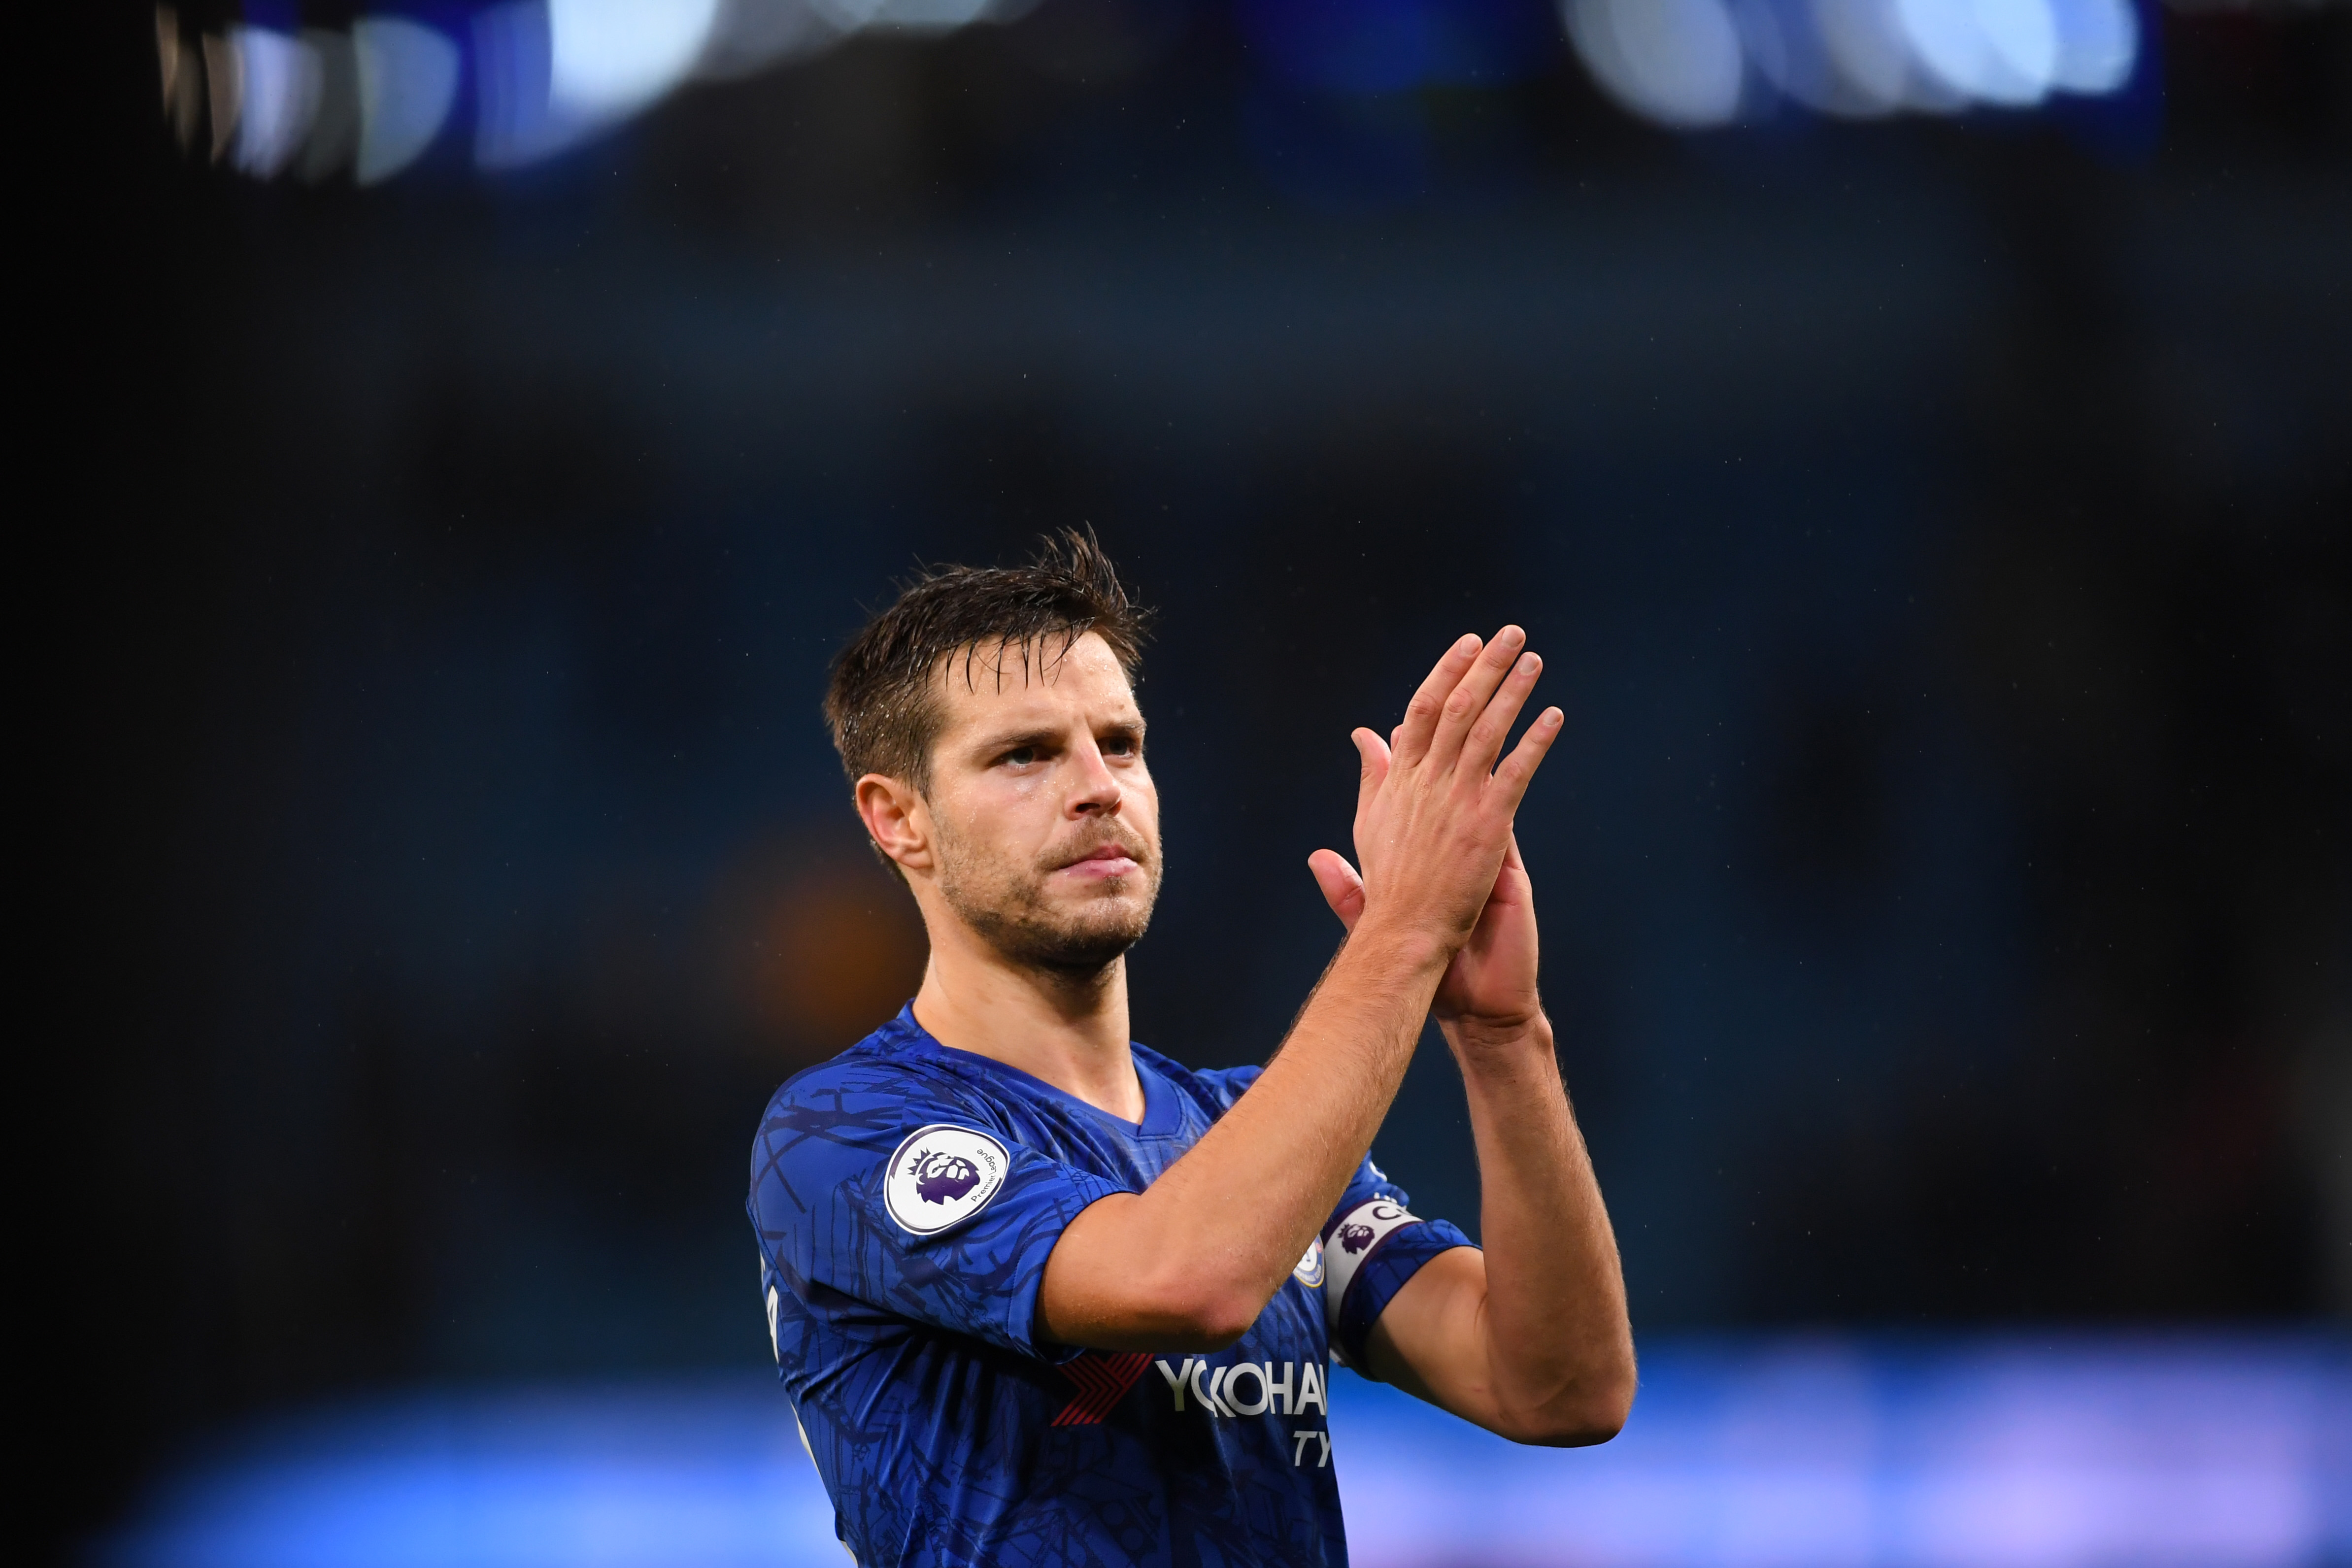 Azpilicueta will be a free agent in 2022 (Photo by Laurence Griffiths/Getty Images)